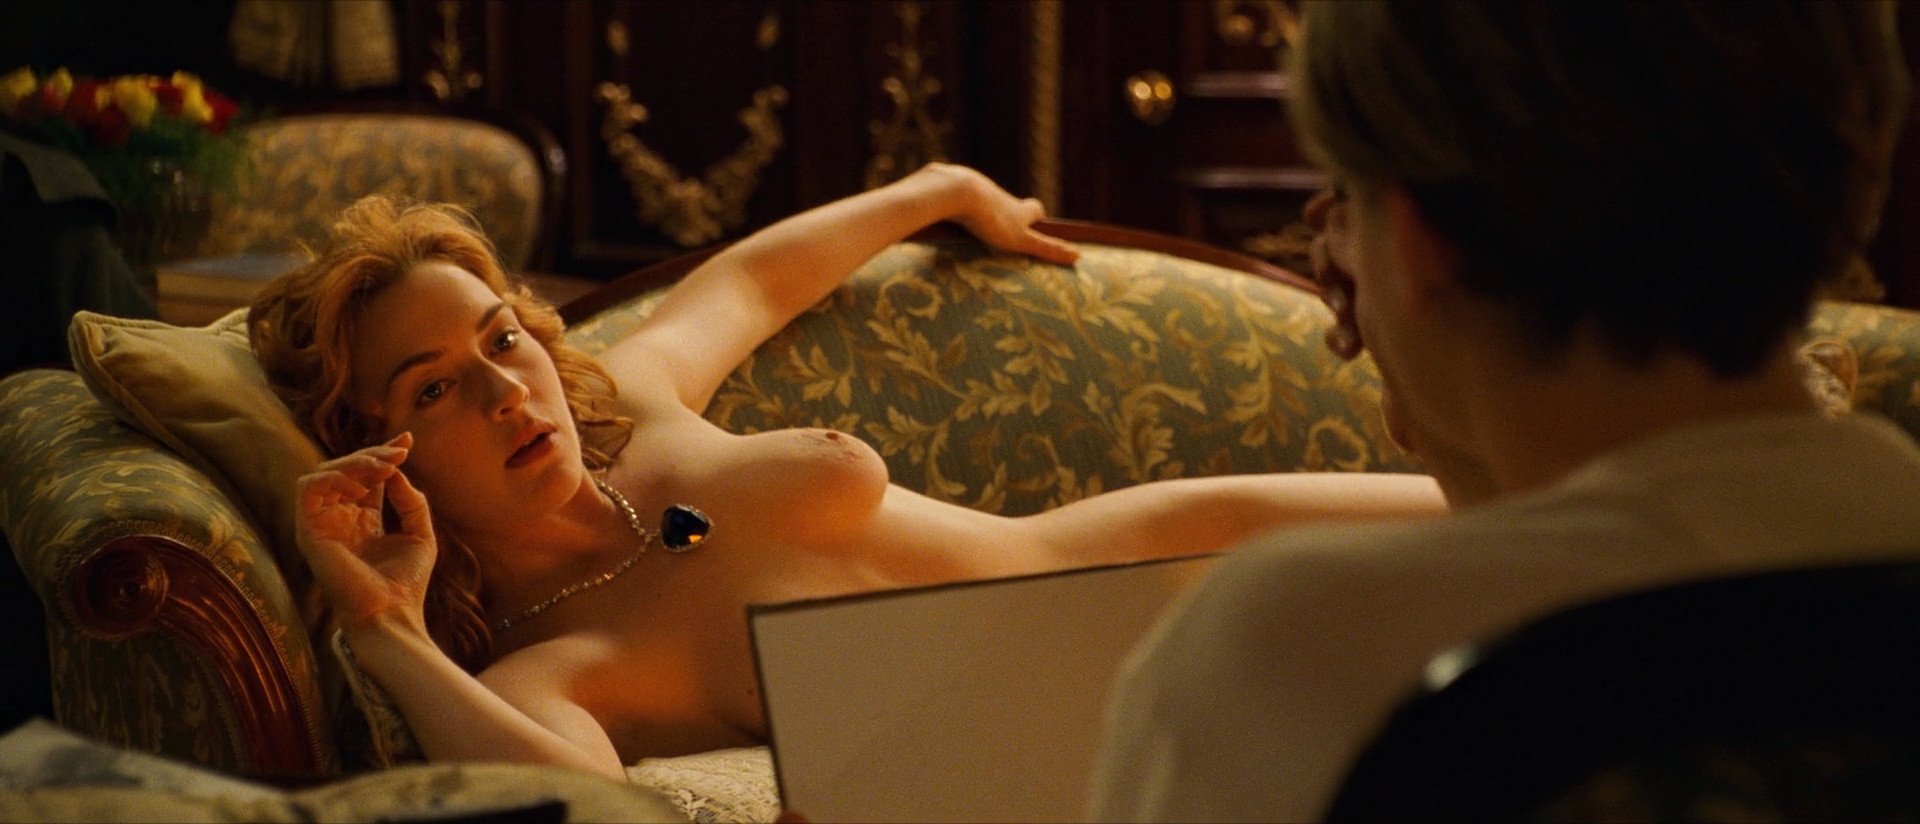 Kate Winslet Nude From Titanic 3